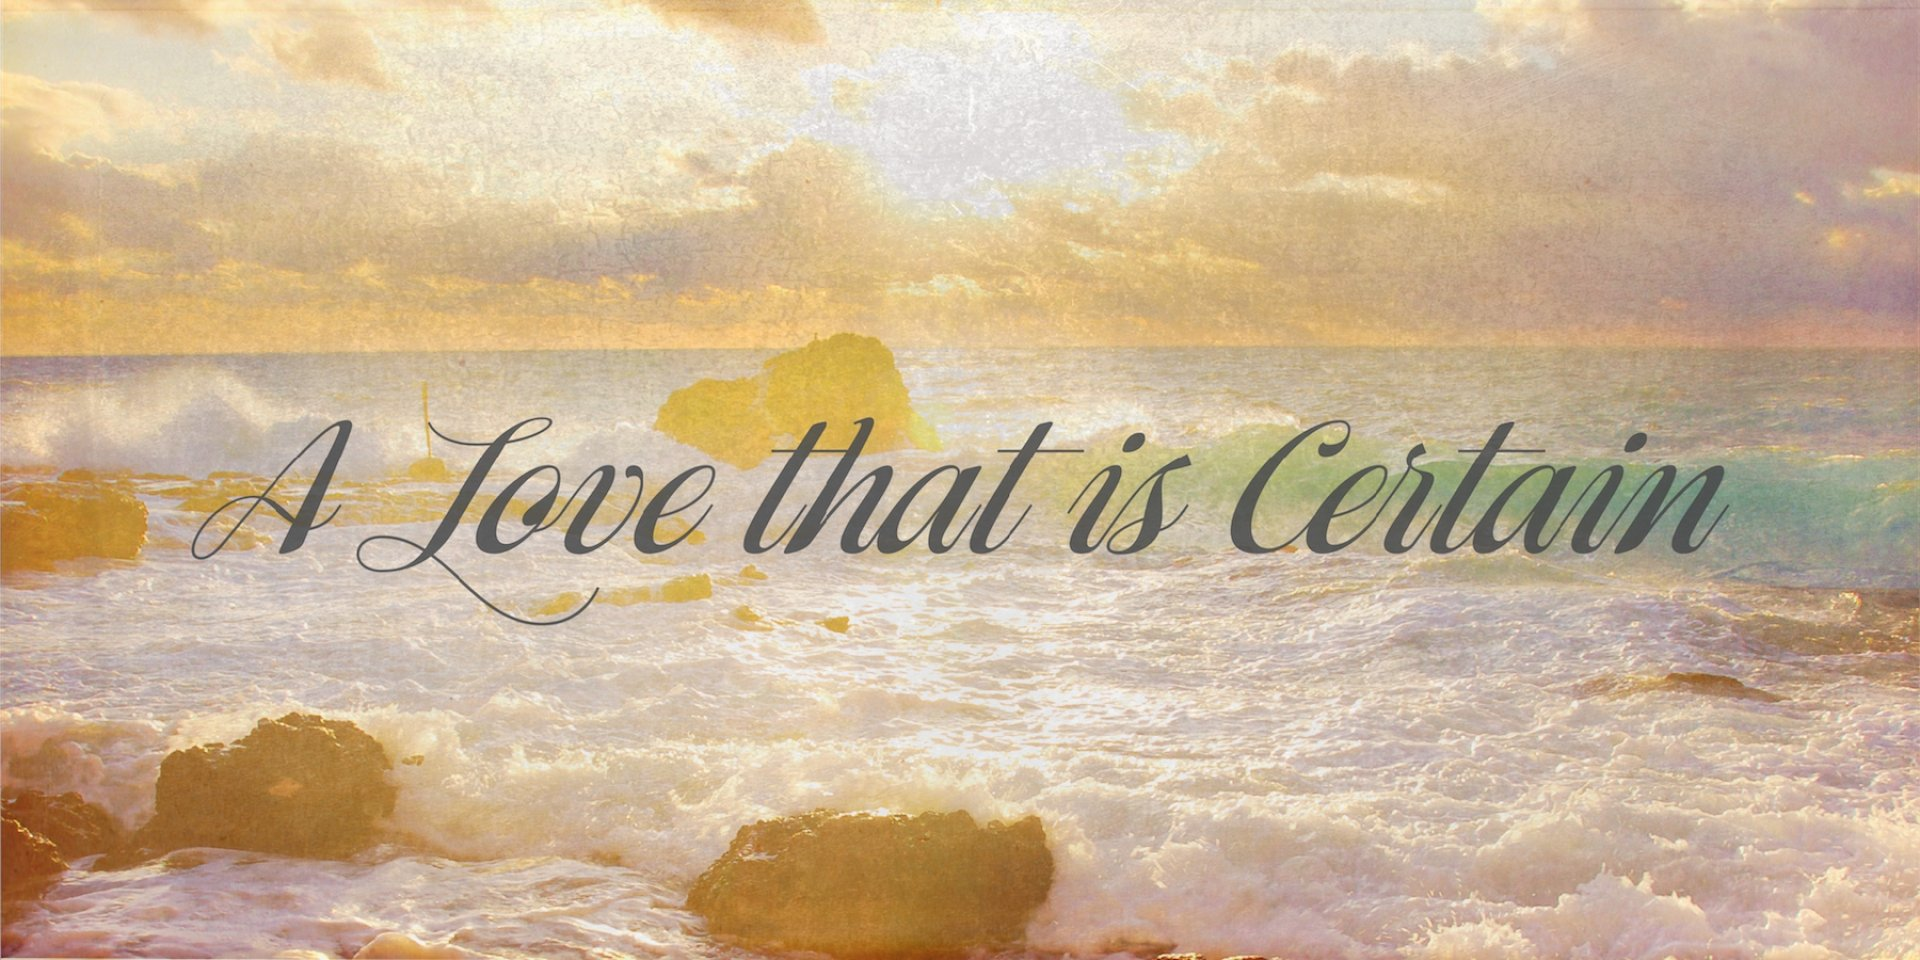 Poster forA Love That Is Certain | Burrrrrhamas